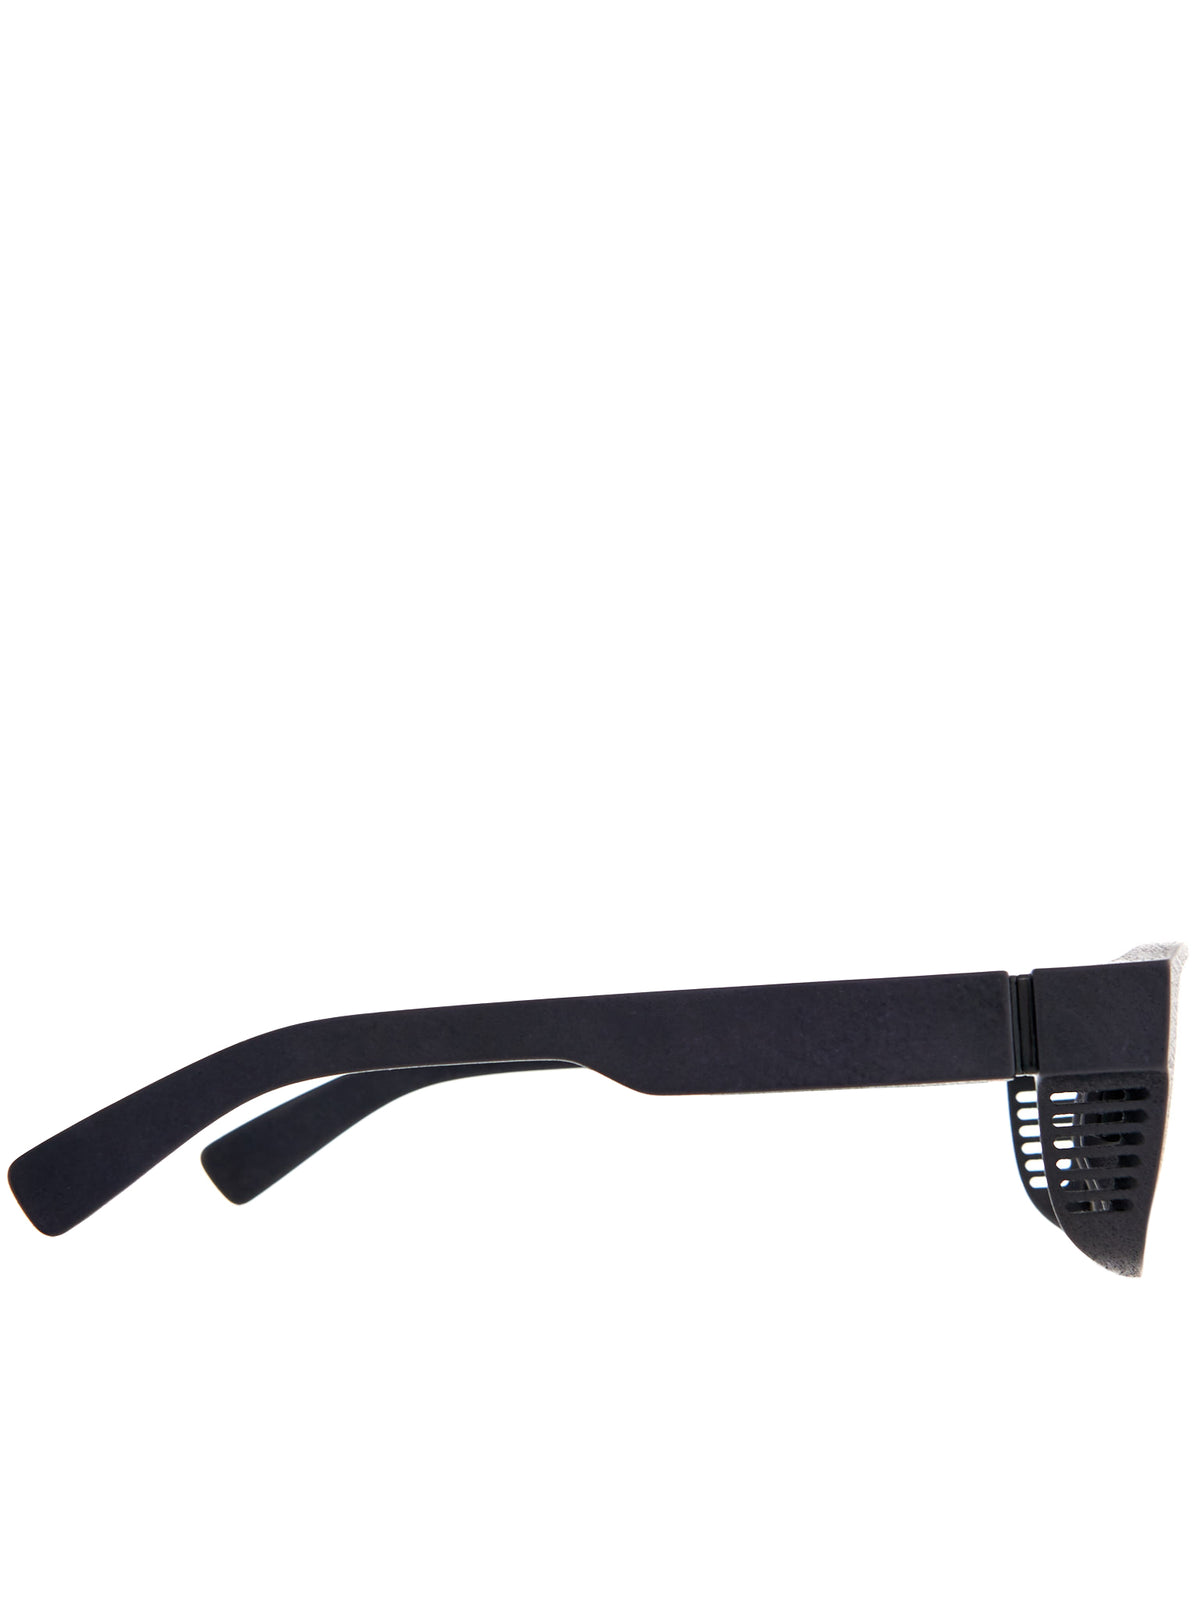 'Boost' Sunglasses (BOOST-PITCH-BLACK-GREY)